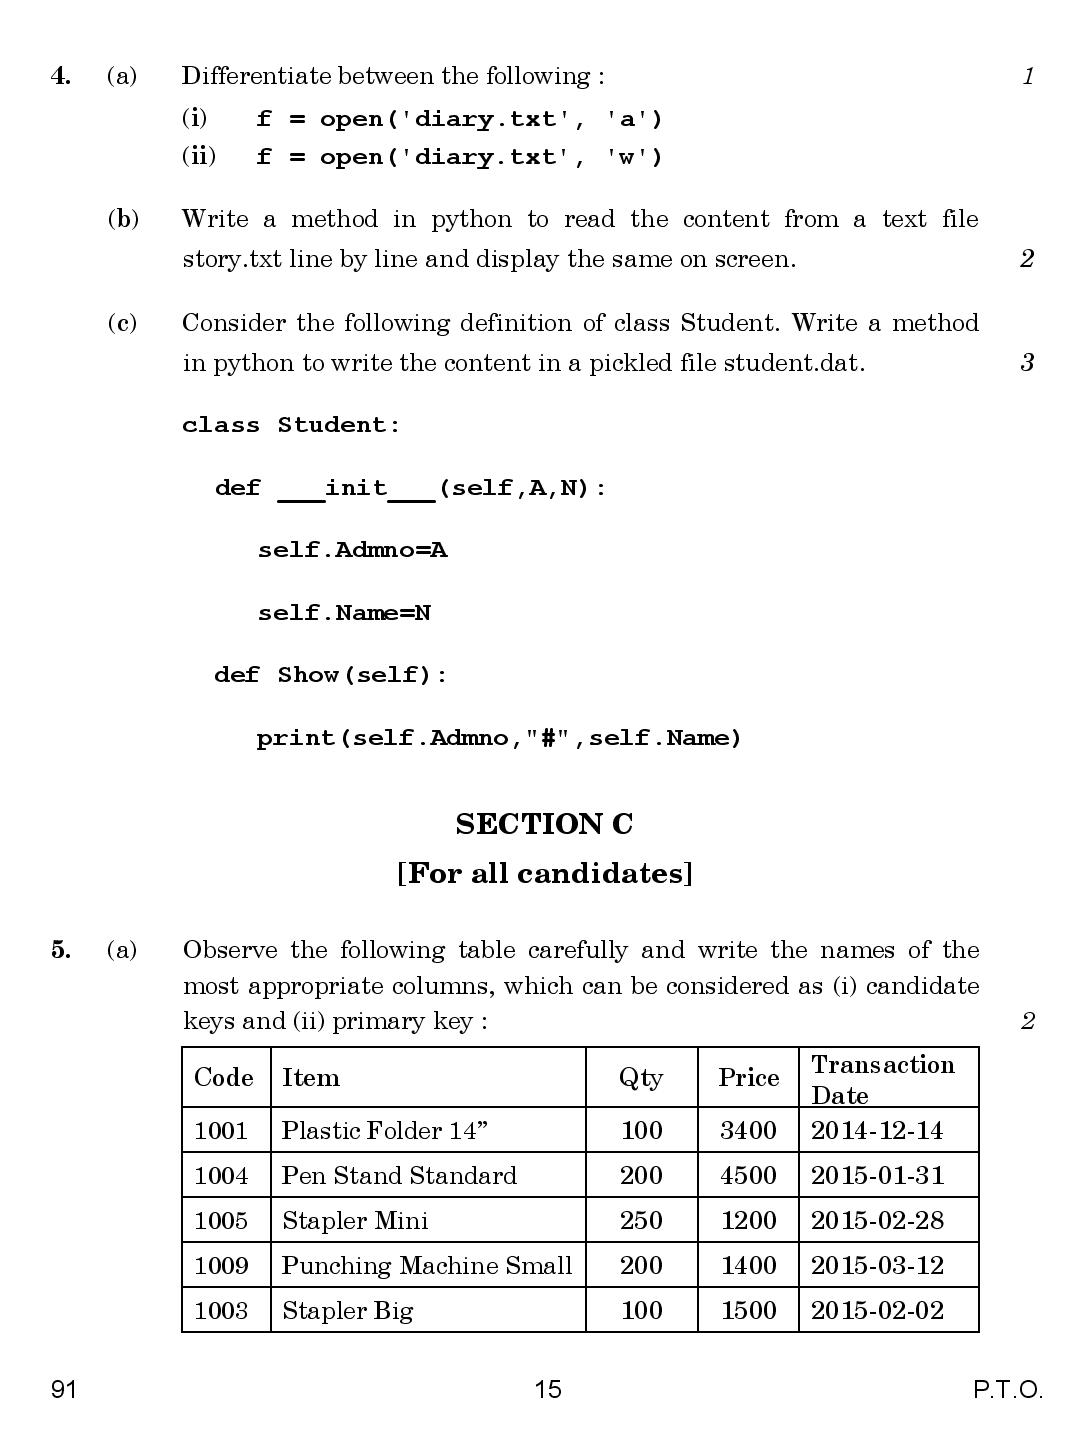 cbse class 12th 2015 Computer Science question paper